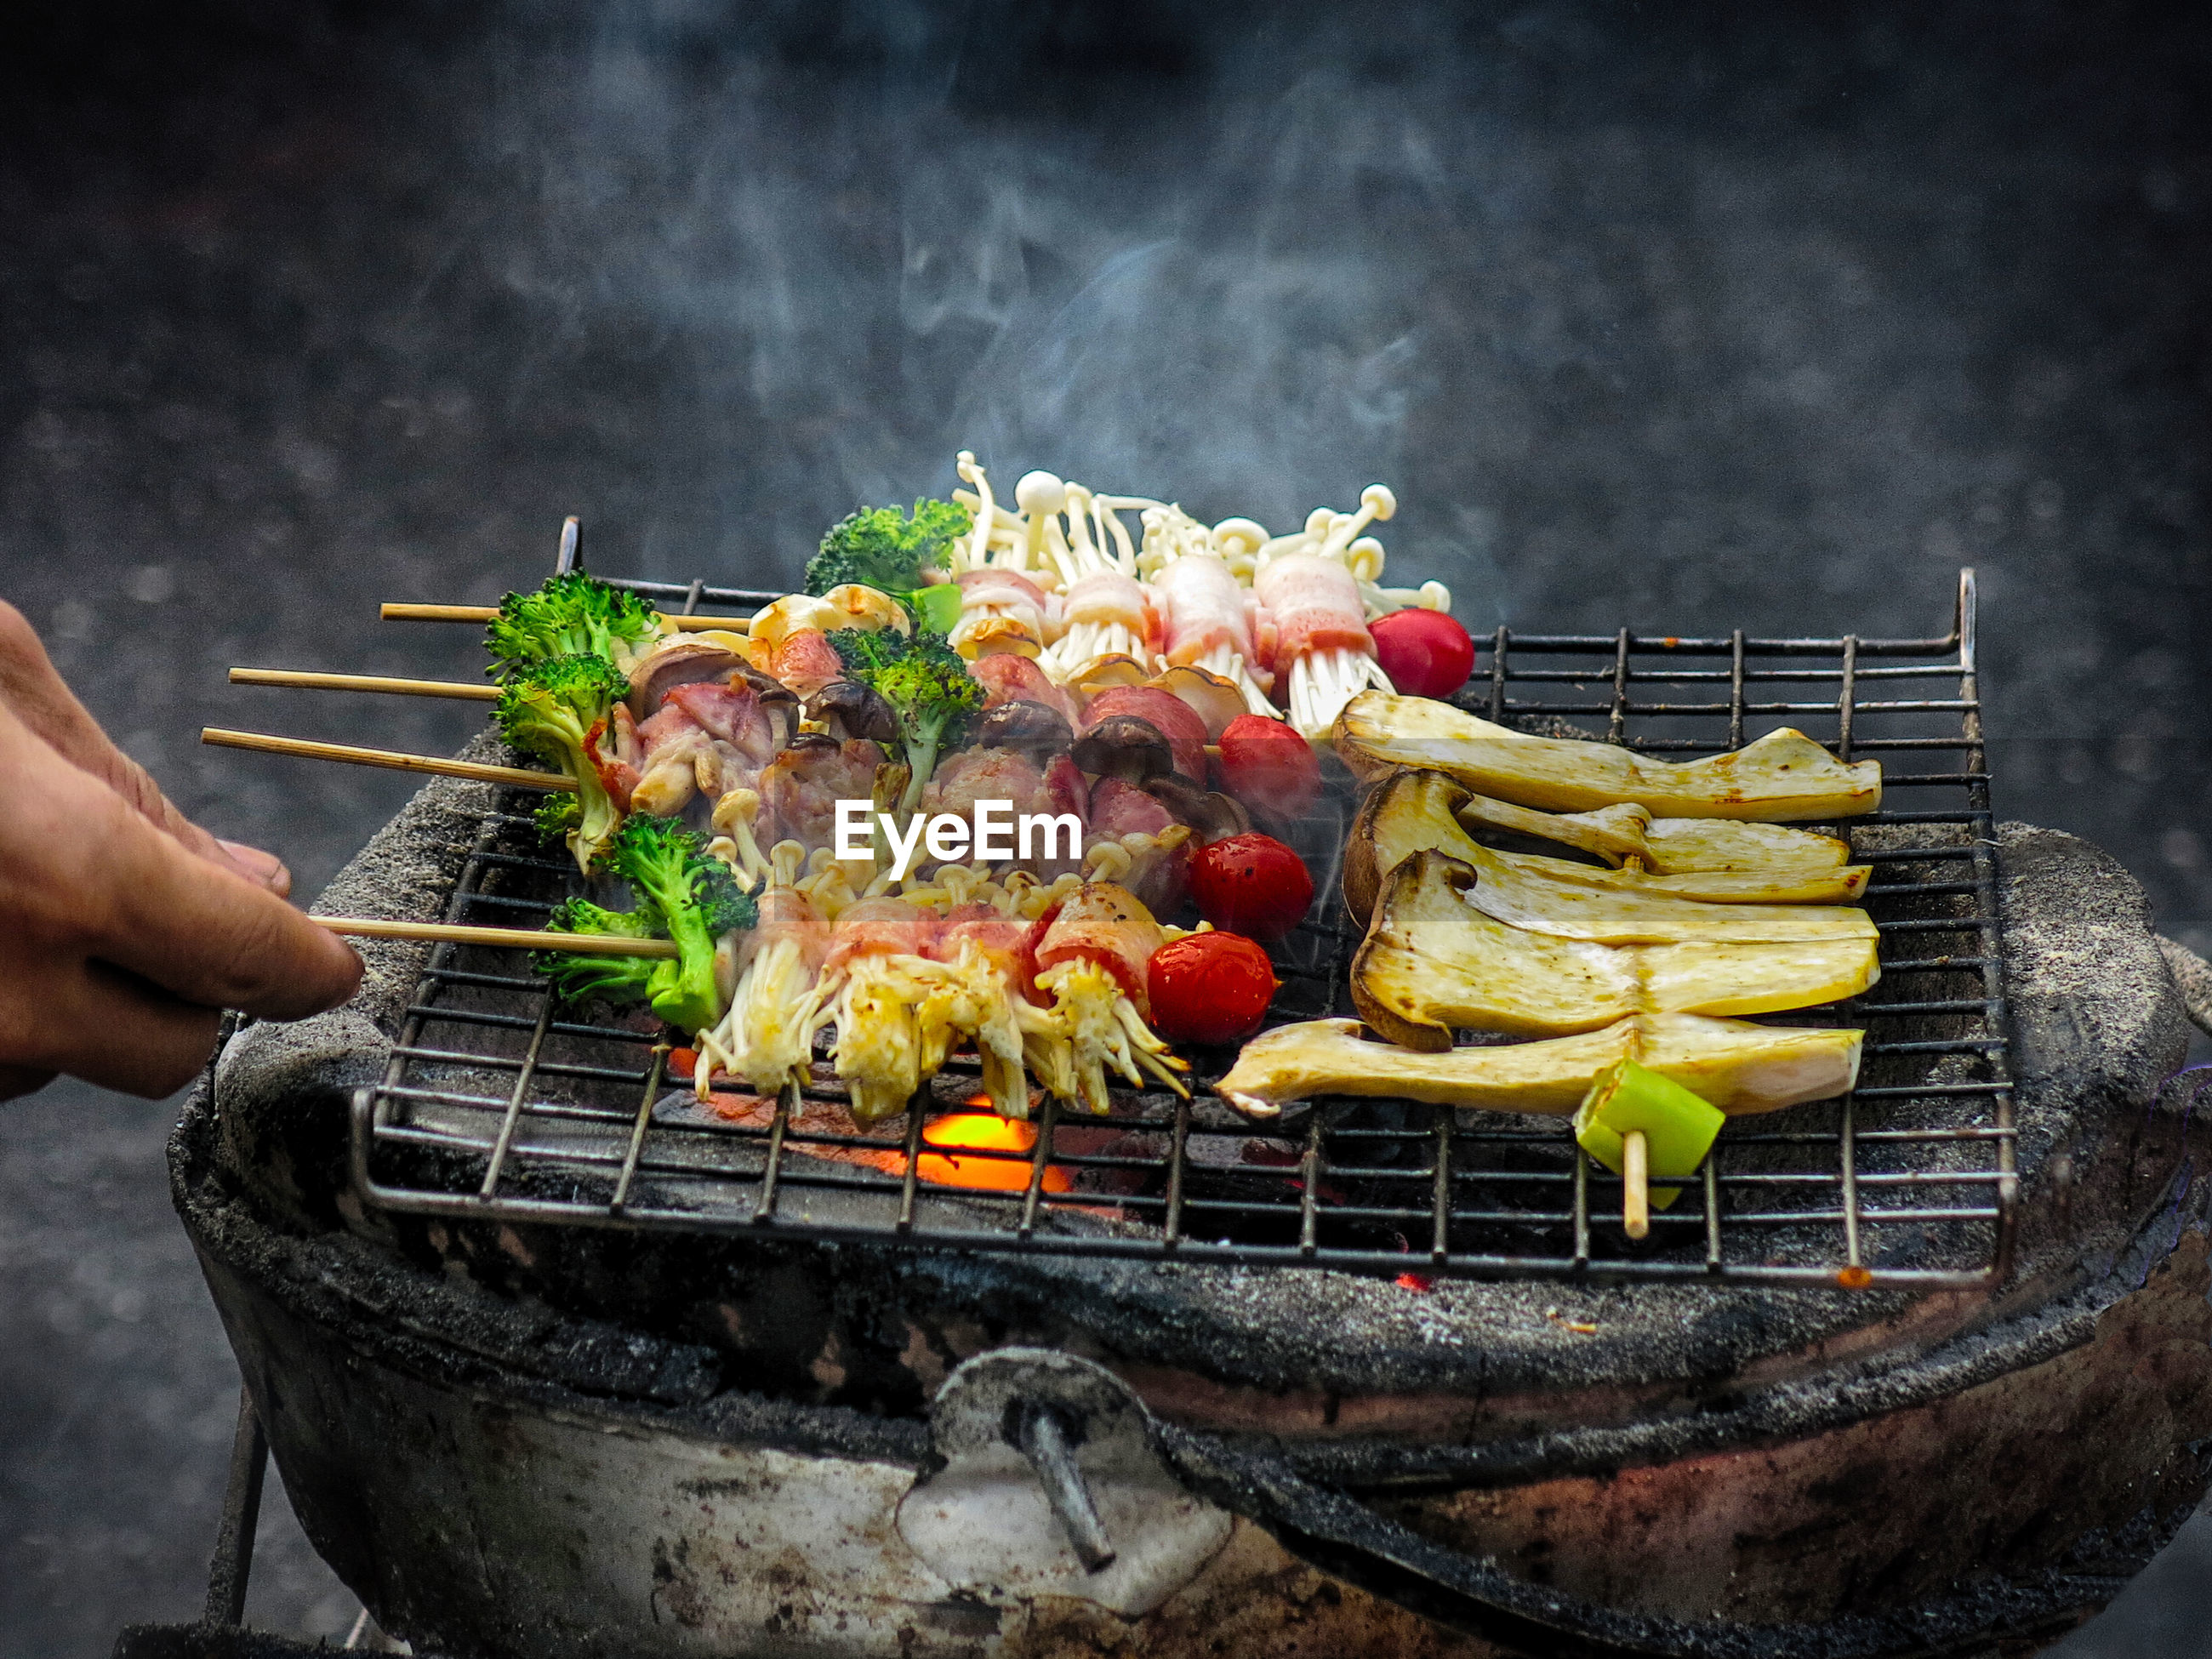 Cropped image of person cooking vegetables on barbecue grill